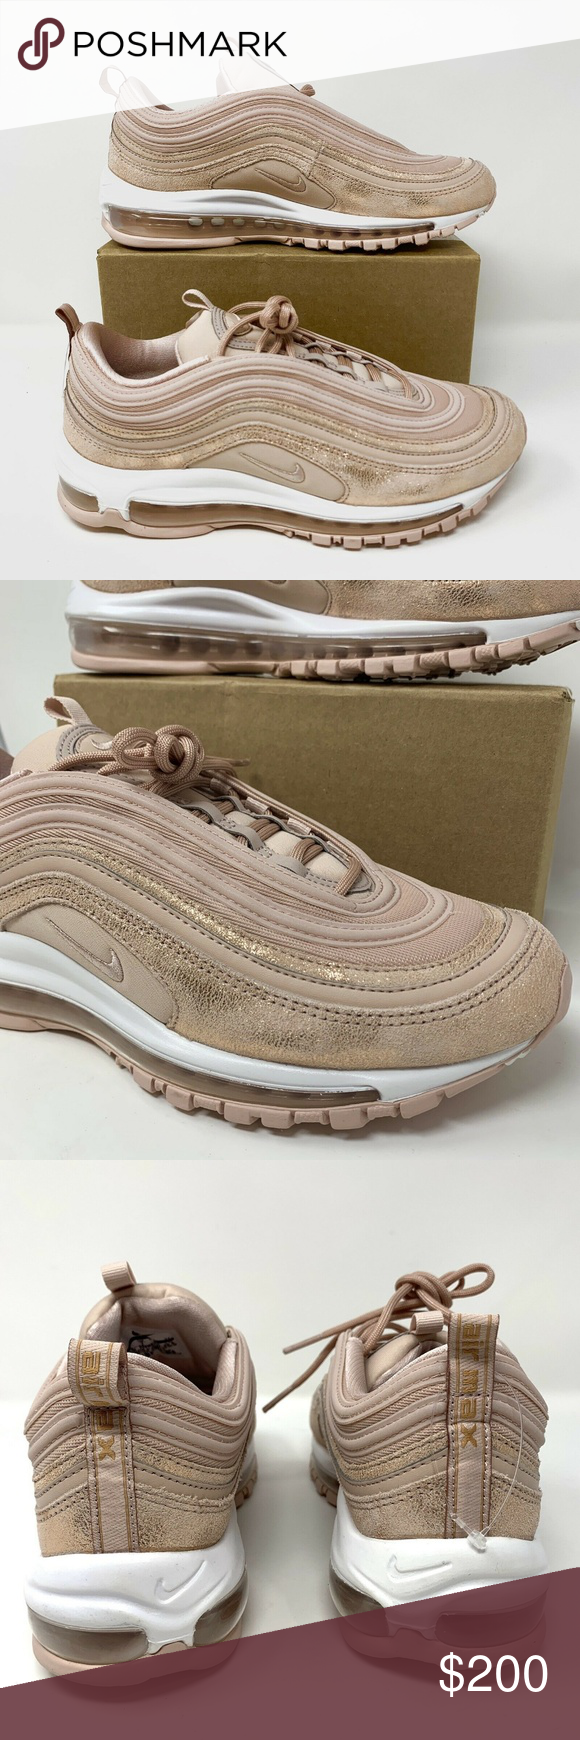 Nike Air Max 97 Women's Size 9.5 Bronze scarpa Nike Air Max